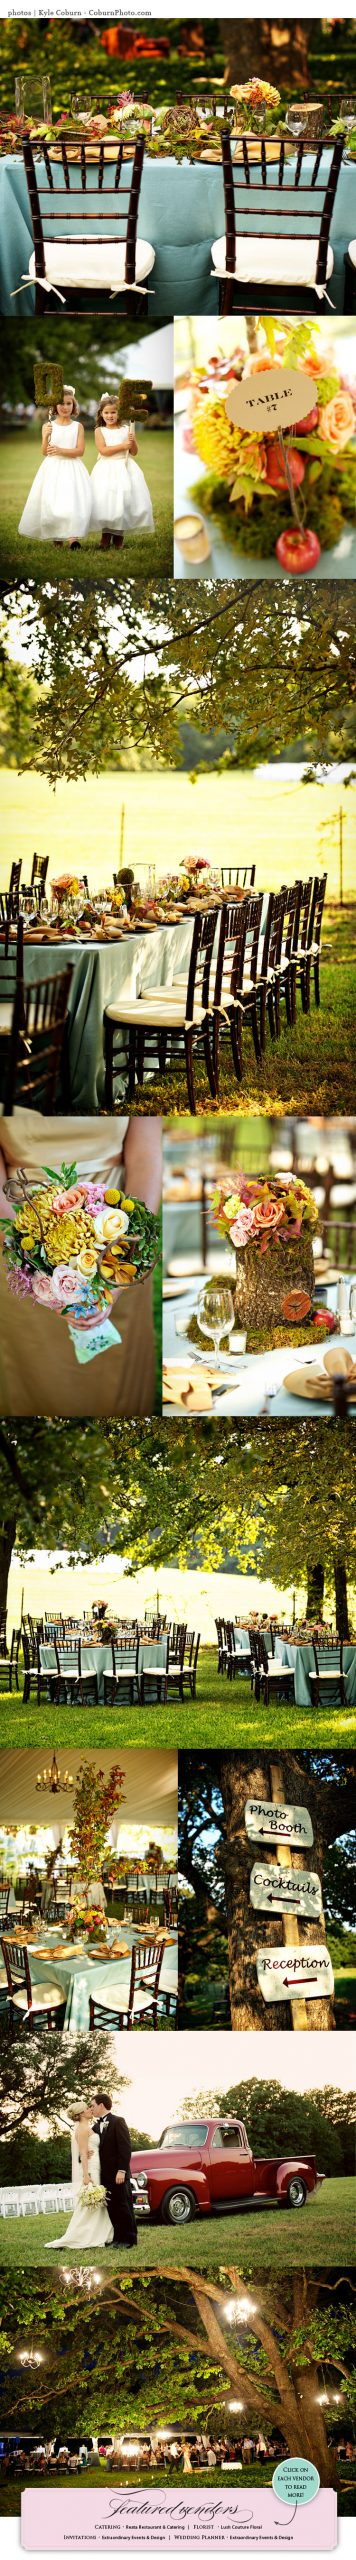 Country chic Texas wedding Extraordinary Events wedding planner Lush Couture Floral Reata Restaurant catering